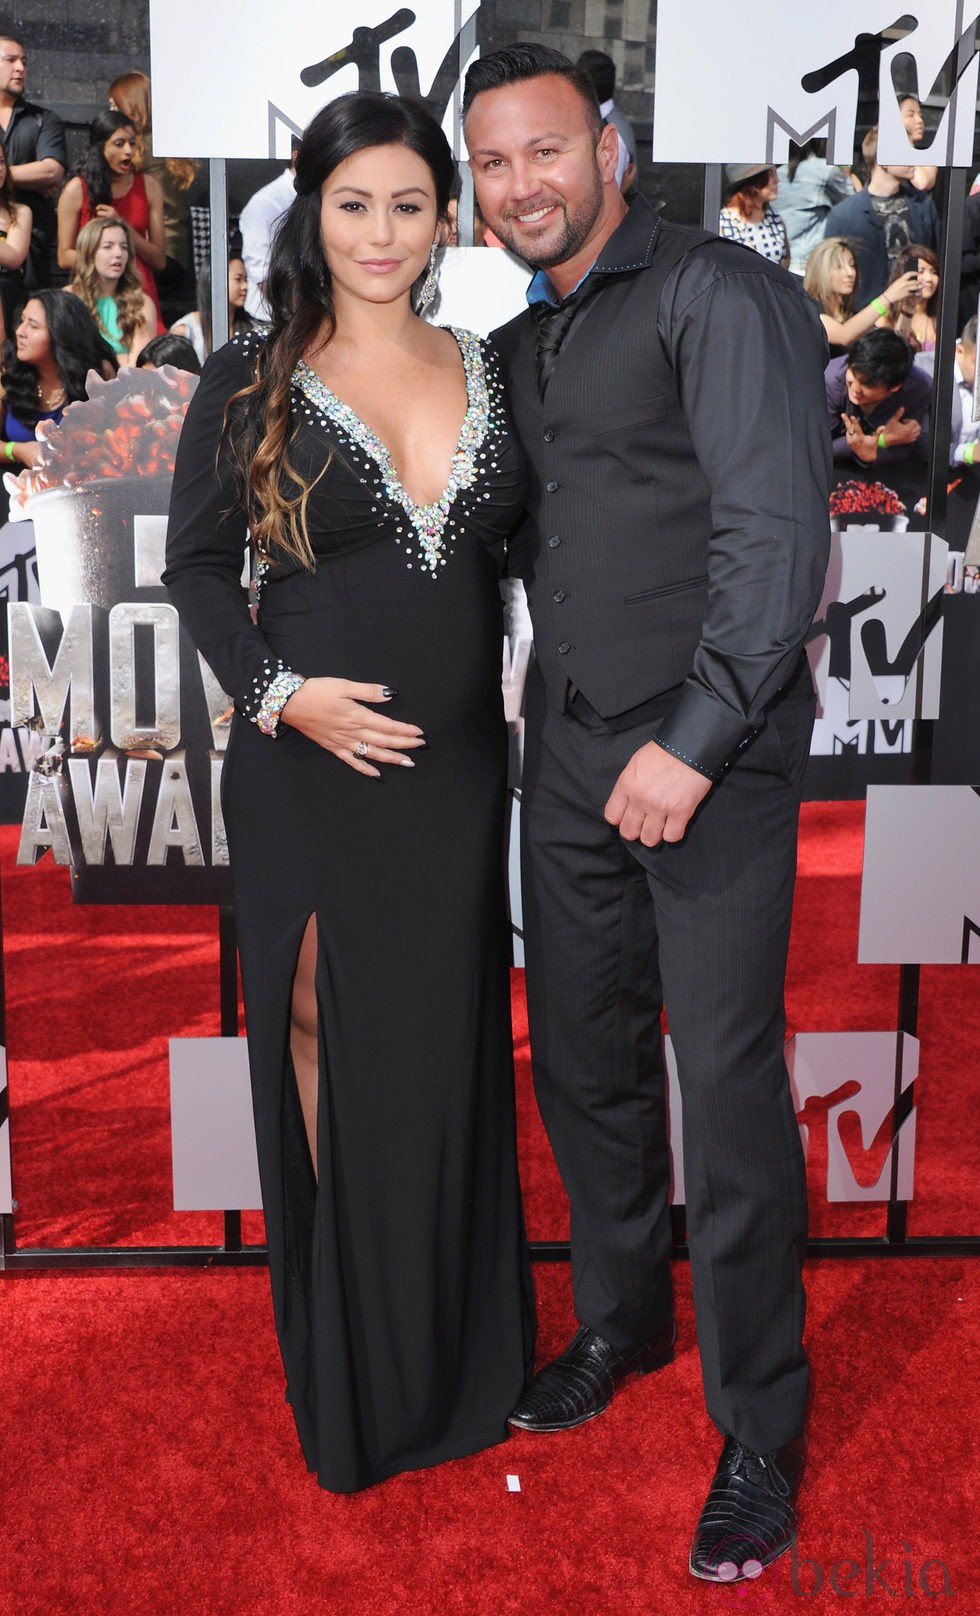 Jwoww y Roger Mathews en la alfombra roja de MTV Movie Awards 2014